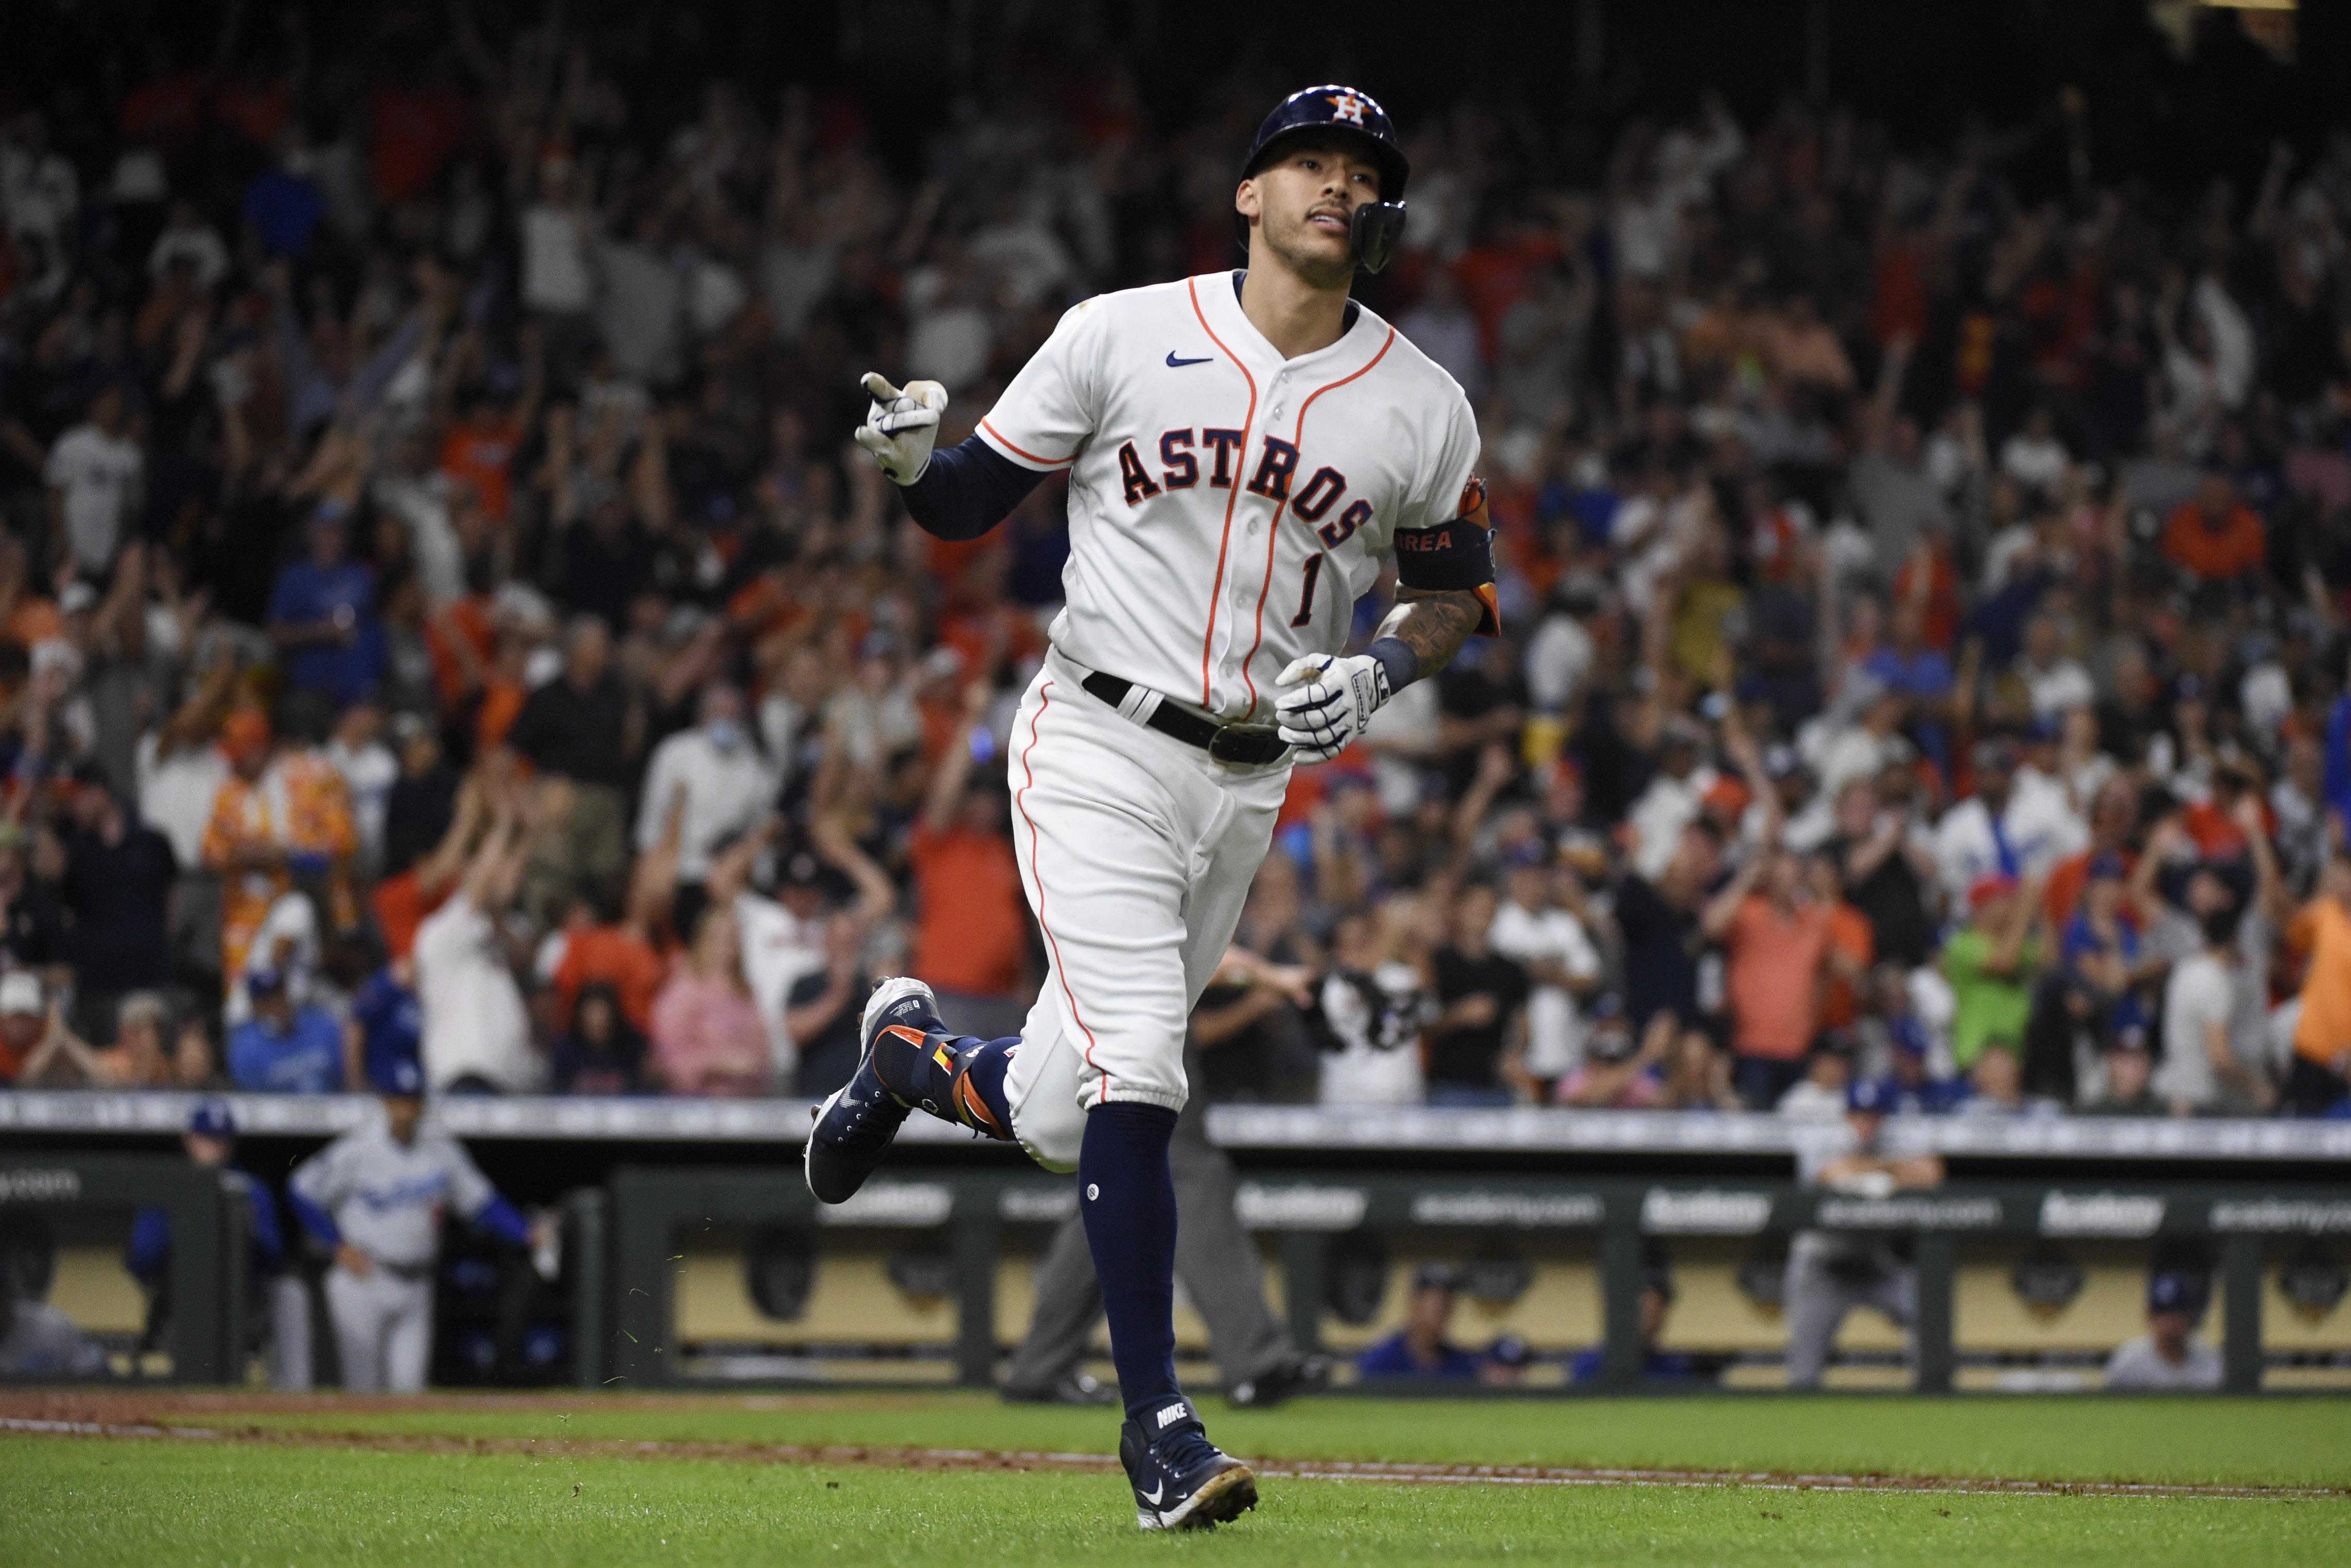 Astros slug 3 homers to end skid with 5-2 win over Dodgers | KWKT ...